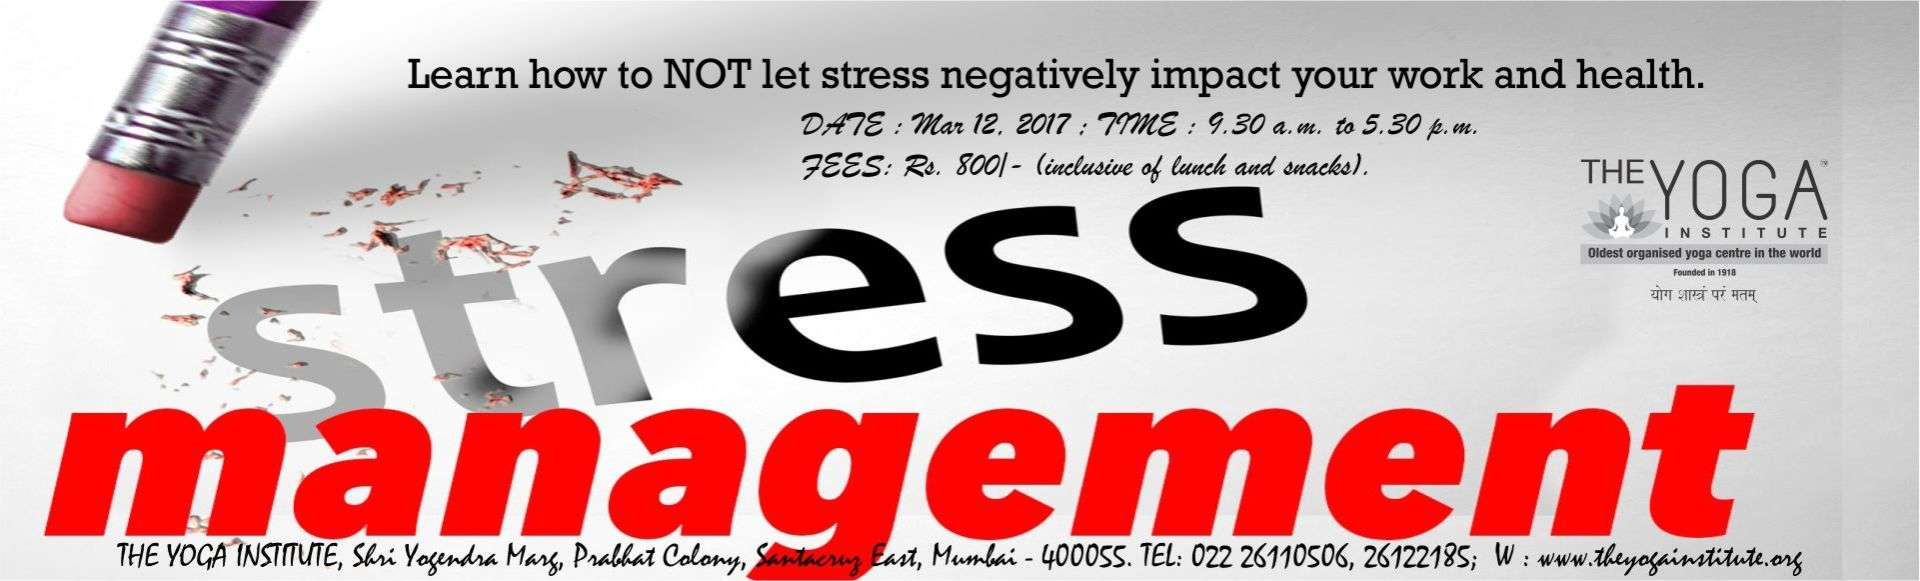 stress-management_March17